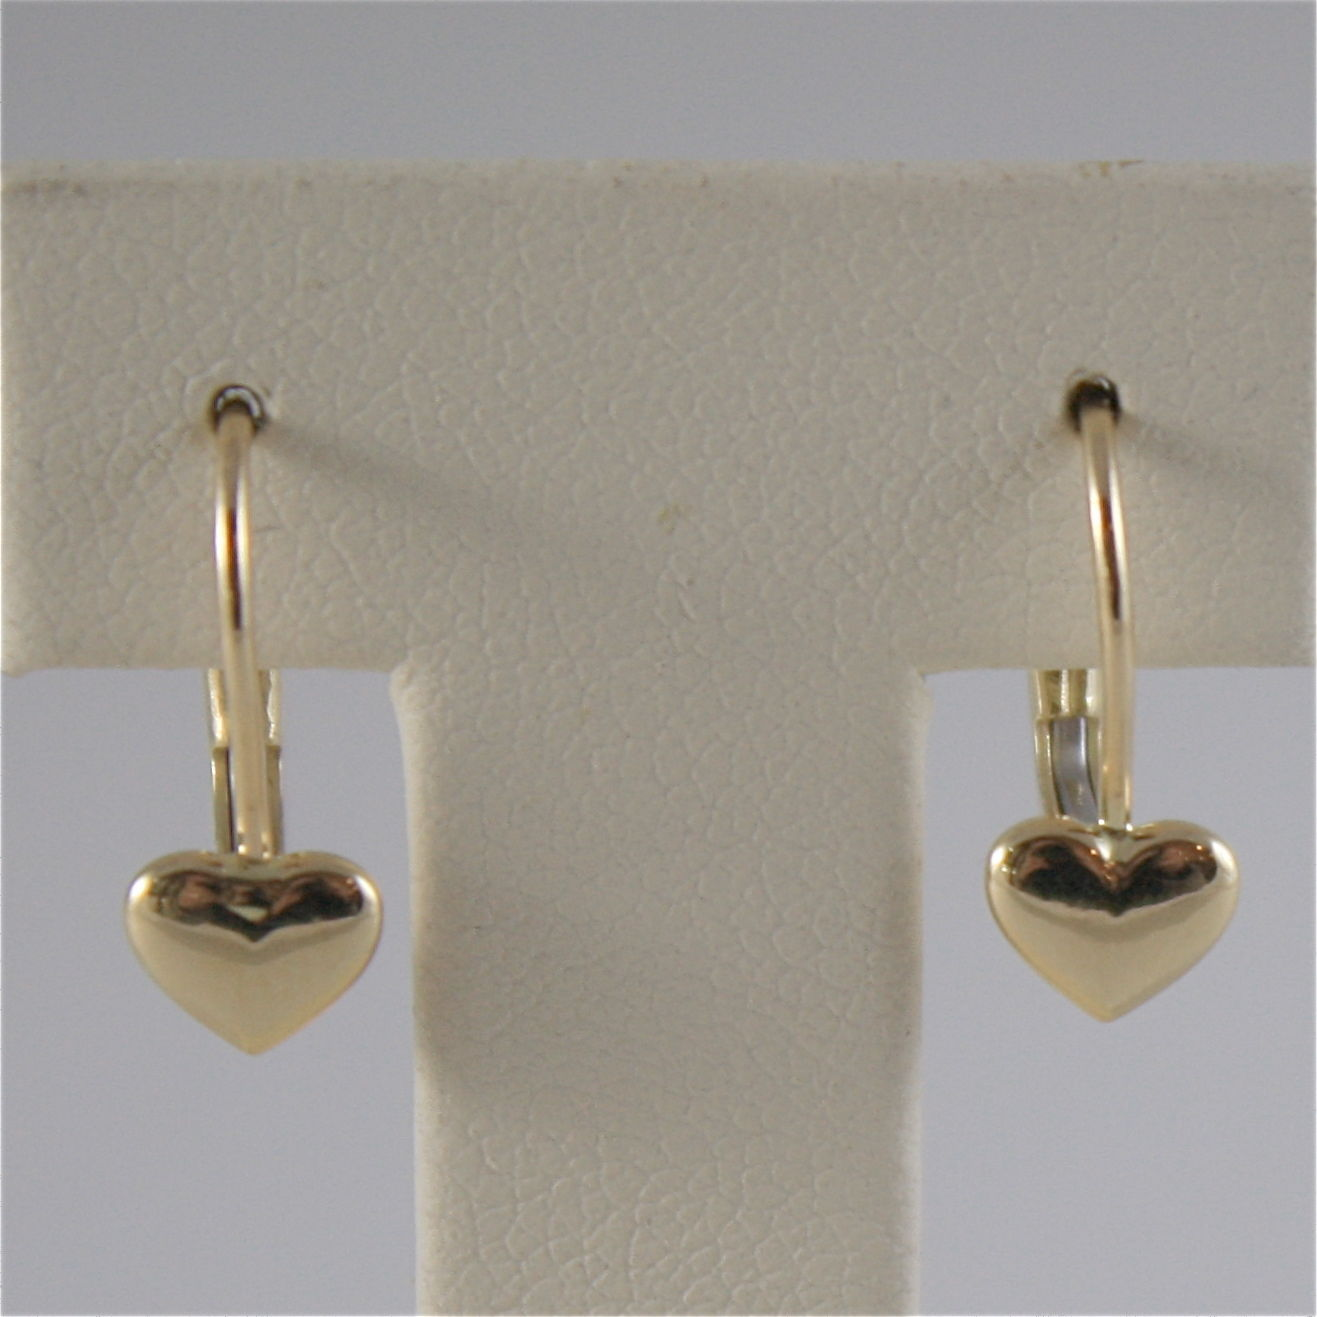 SOLID 18K YELLOW GOLD PENDANT EARRINGS WITH HEARTS, LEVERBACK, MADE IN ITALY